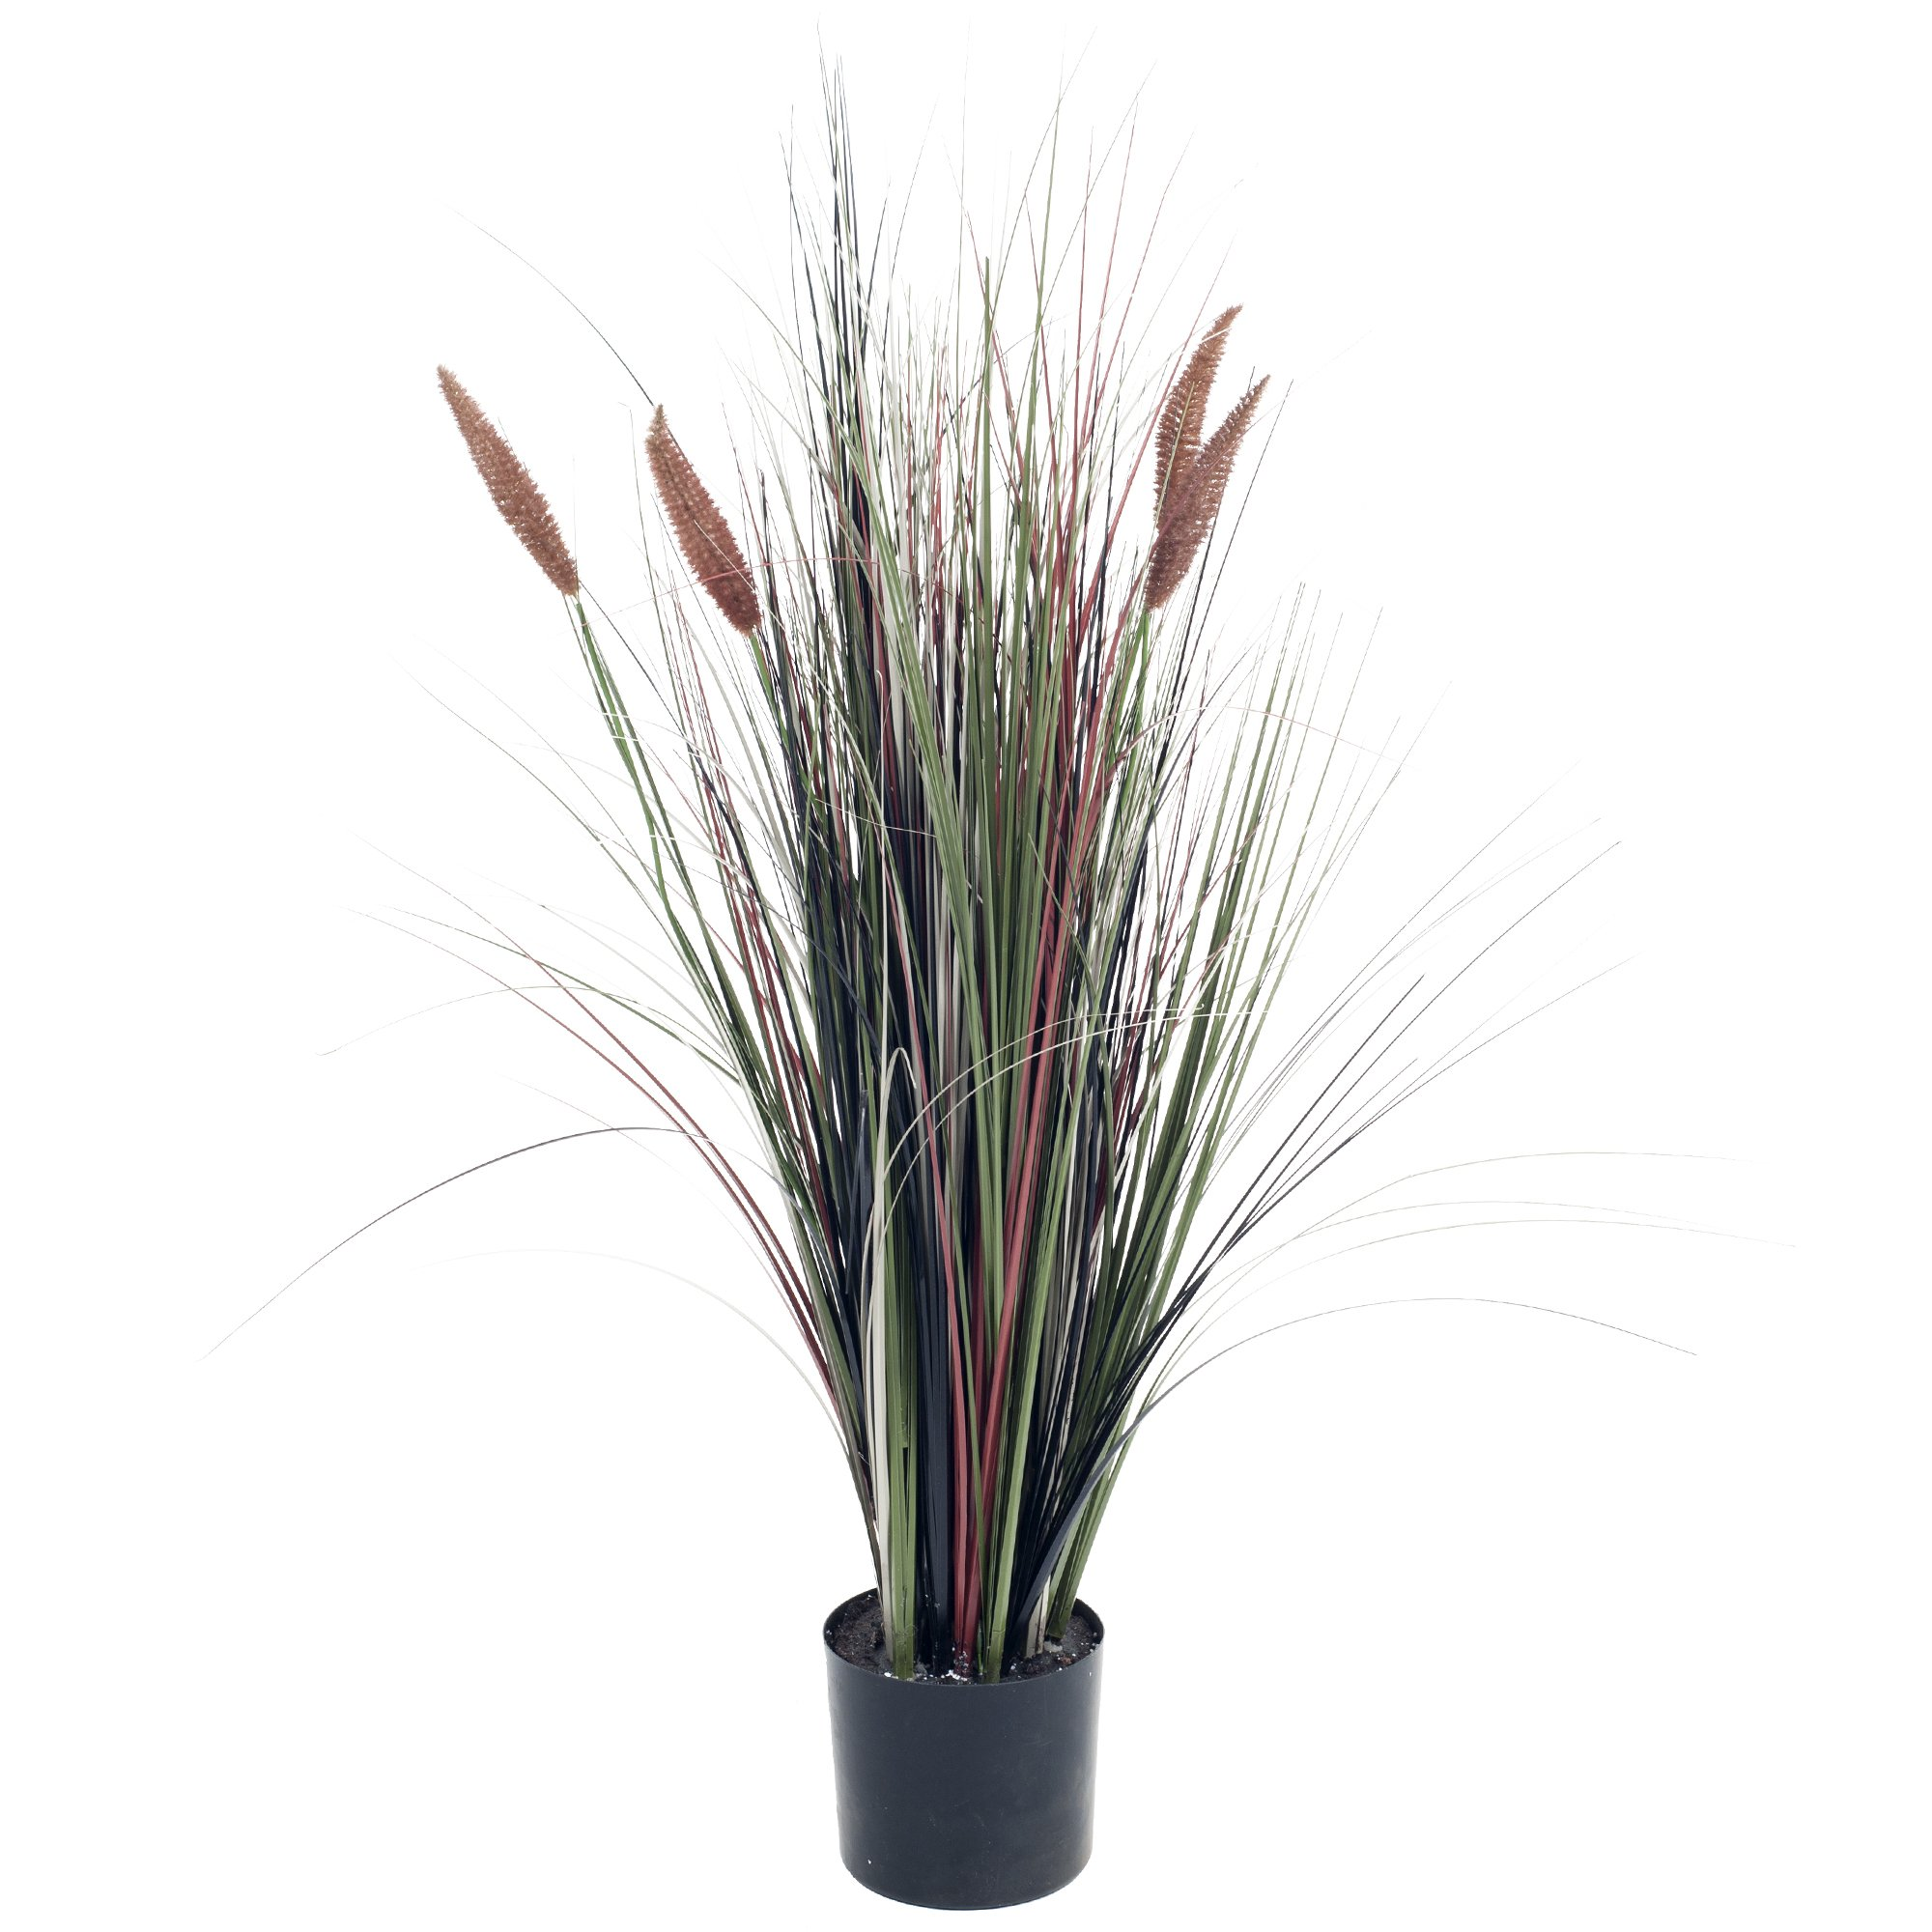 Pure Garden 4 Foot Artificial Cattail Grass - Large Faux Potted Plant for Indoor or Outdoor Decoration at Home, Office, or Restaurant by Pure Garden